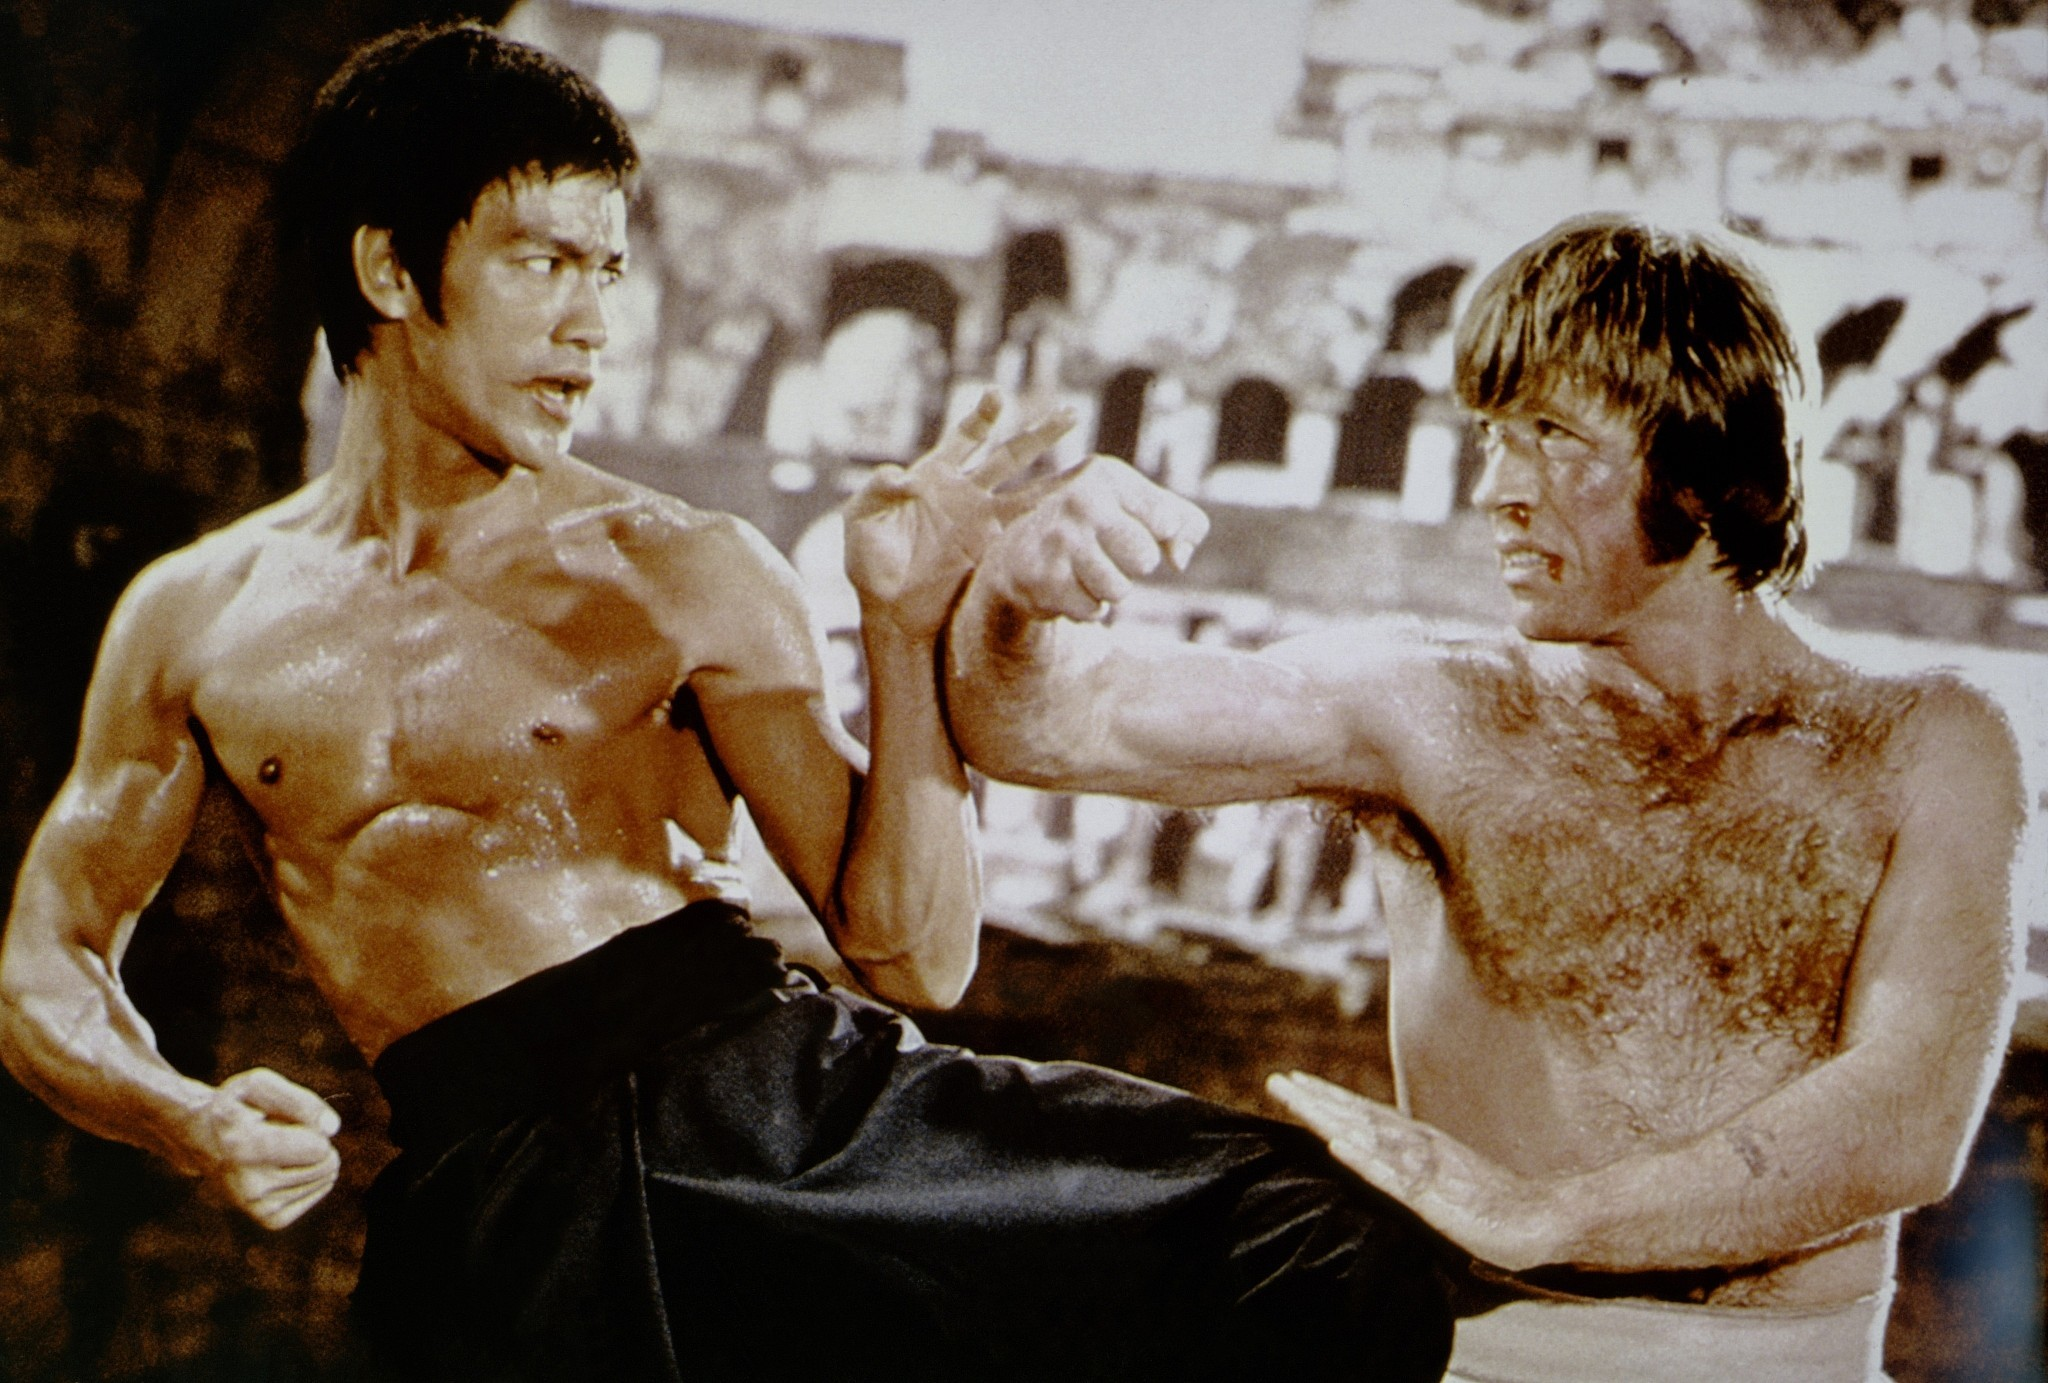 Bruce Lee 78th Anniversary Film Screenings